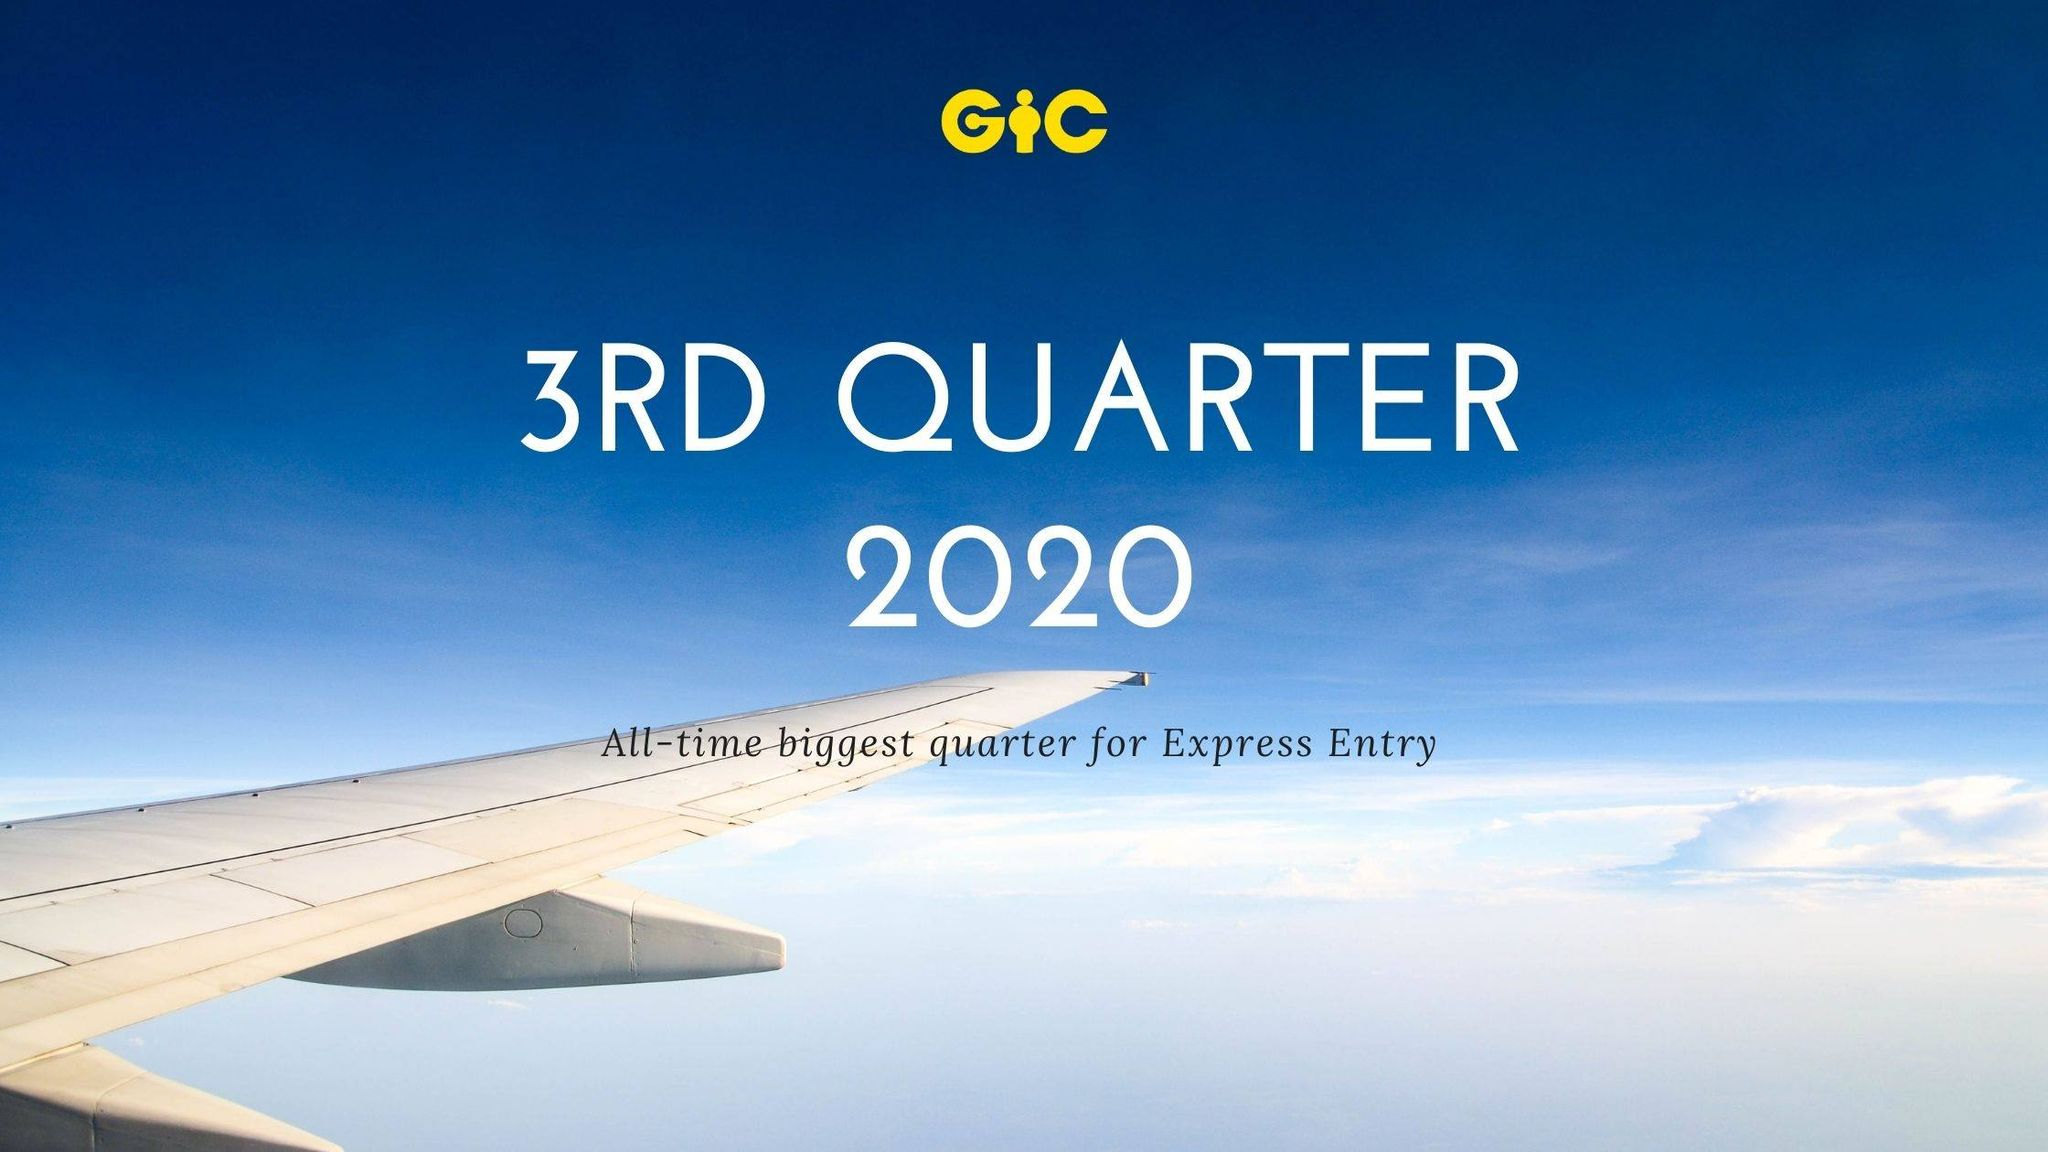 Q3 2020 All-time biggest quarter for Express Entry